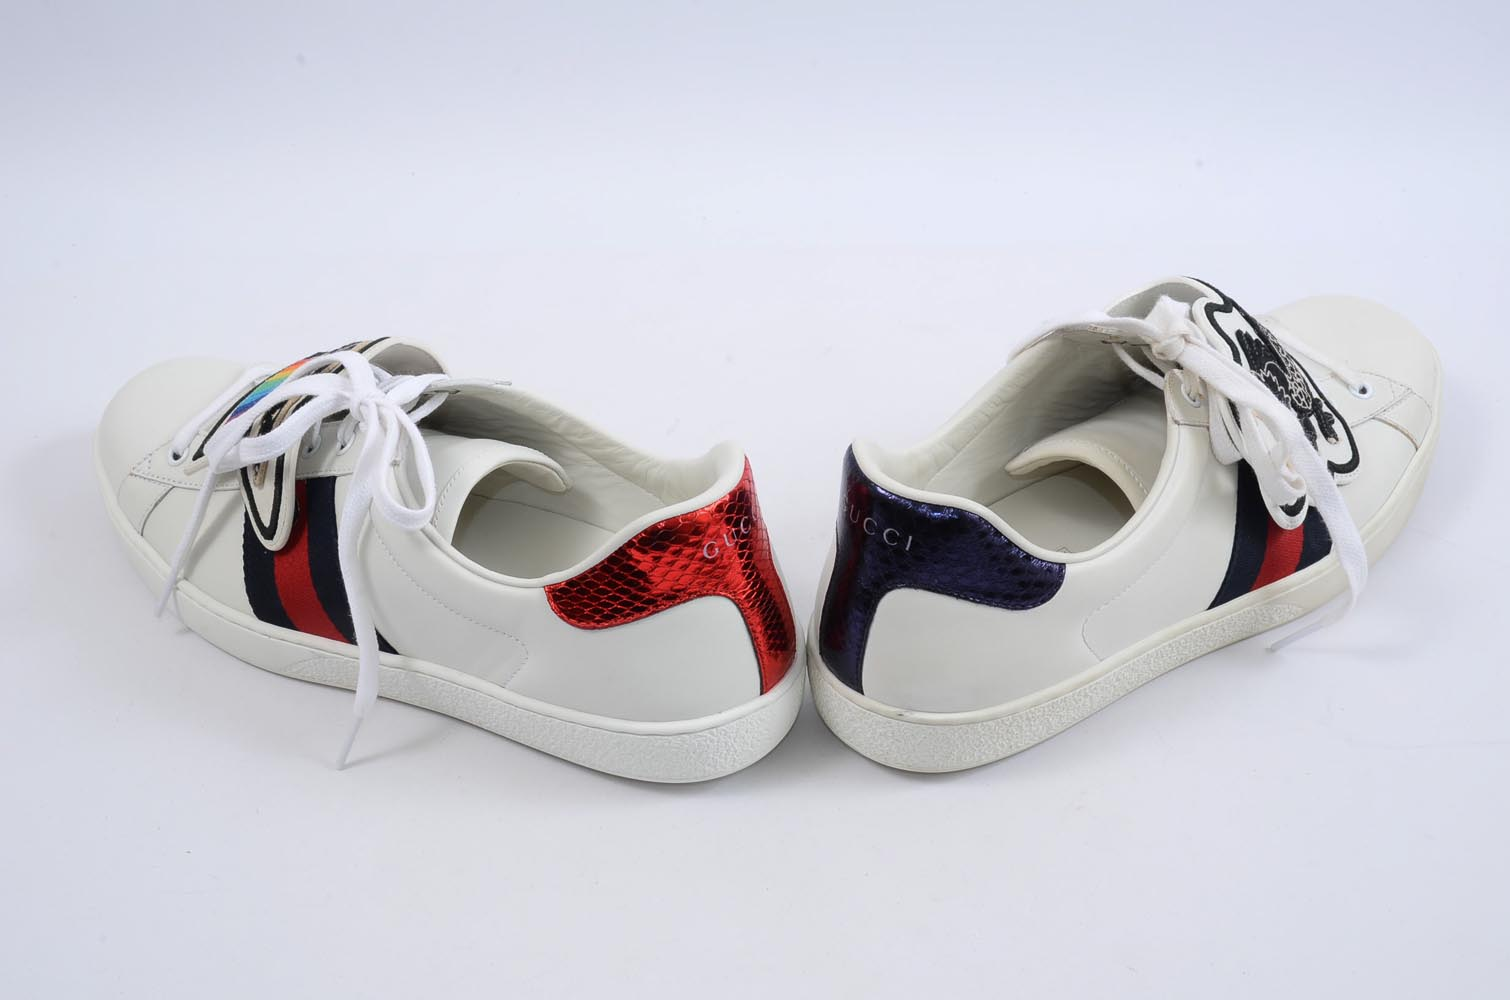 551feb451e1 Gucci Ace white multi 12 web stripe UFO dragon patch sneaker UK11 shoe  730